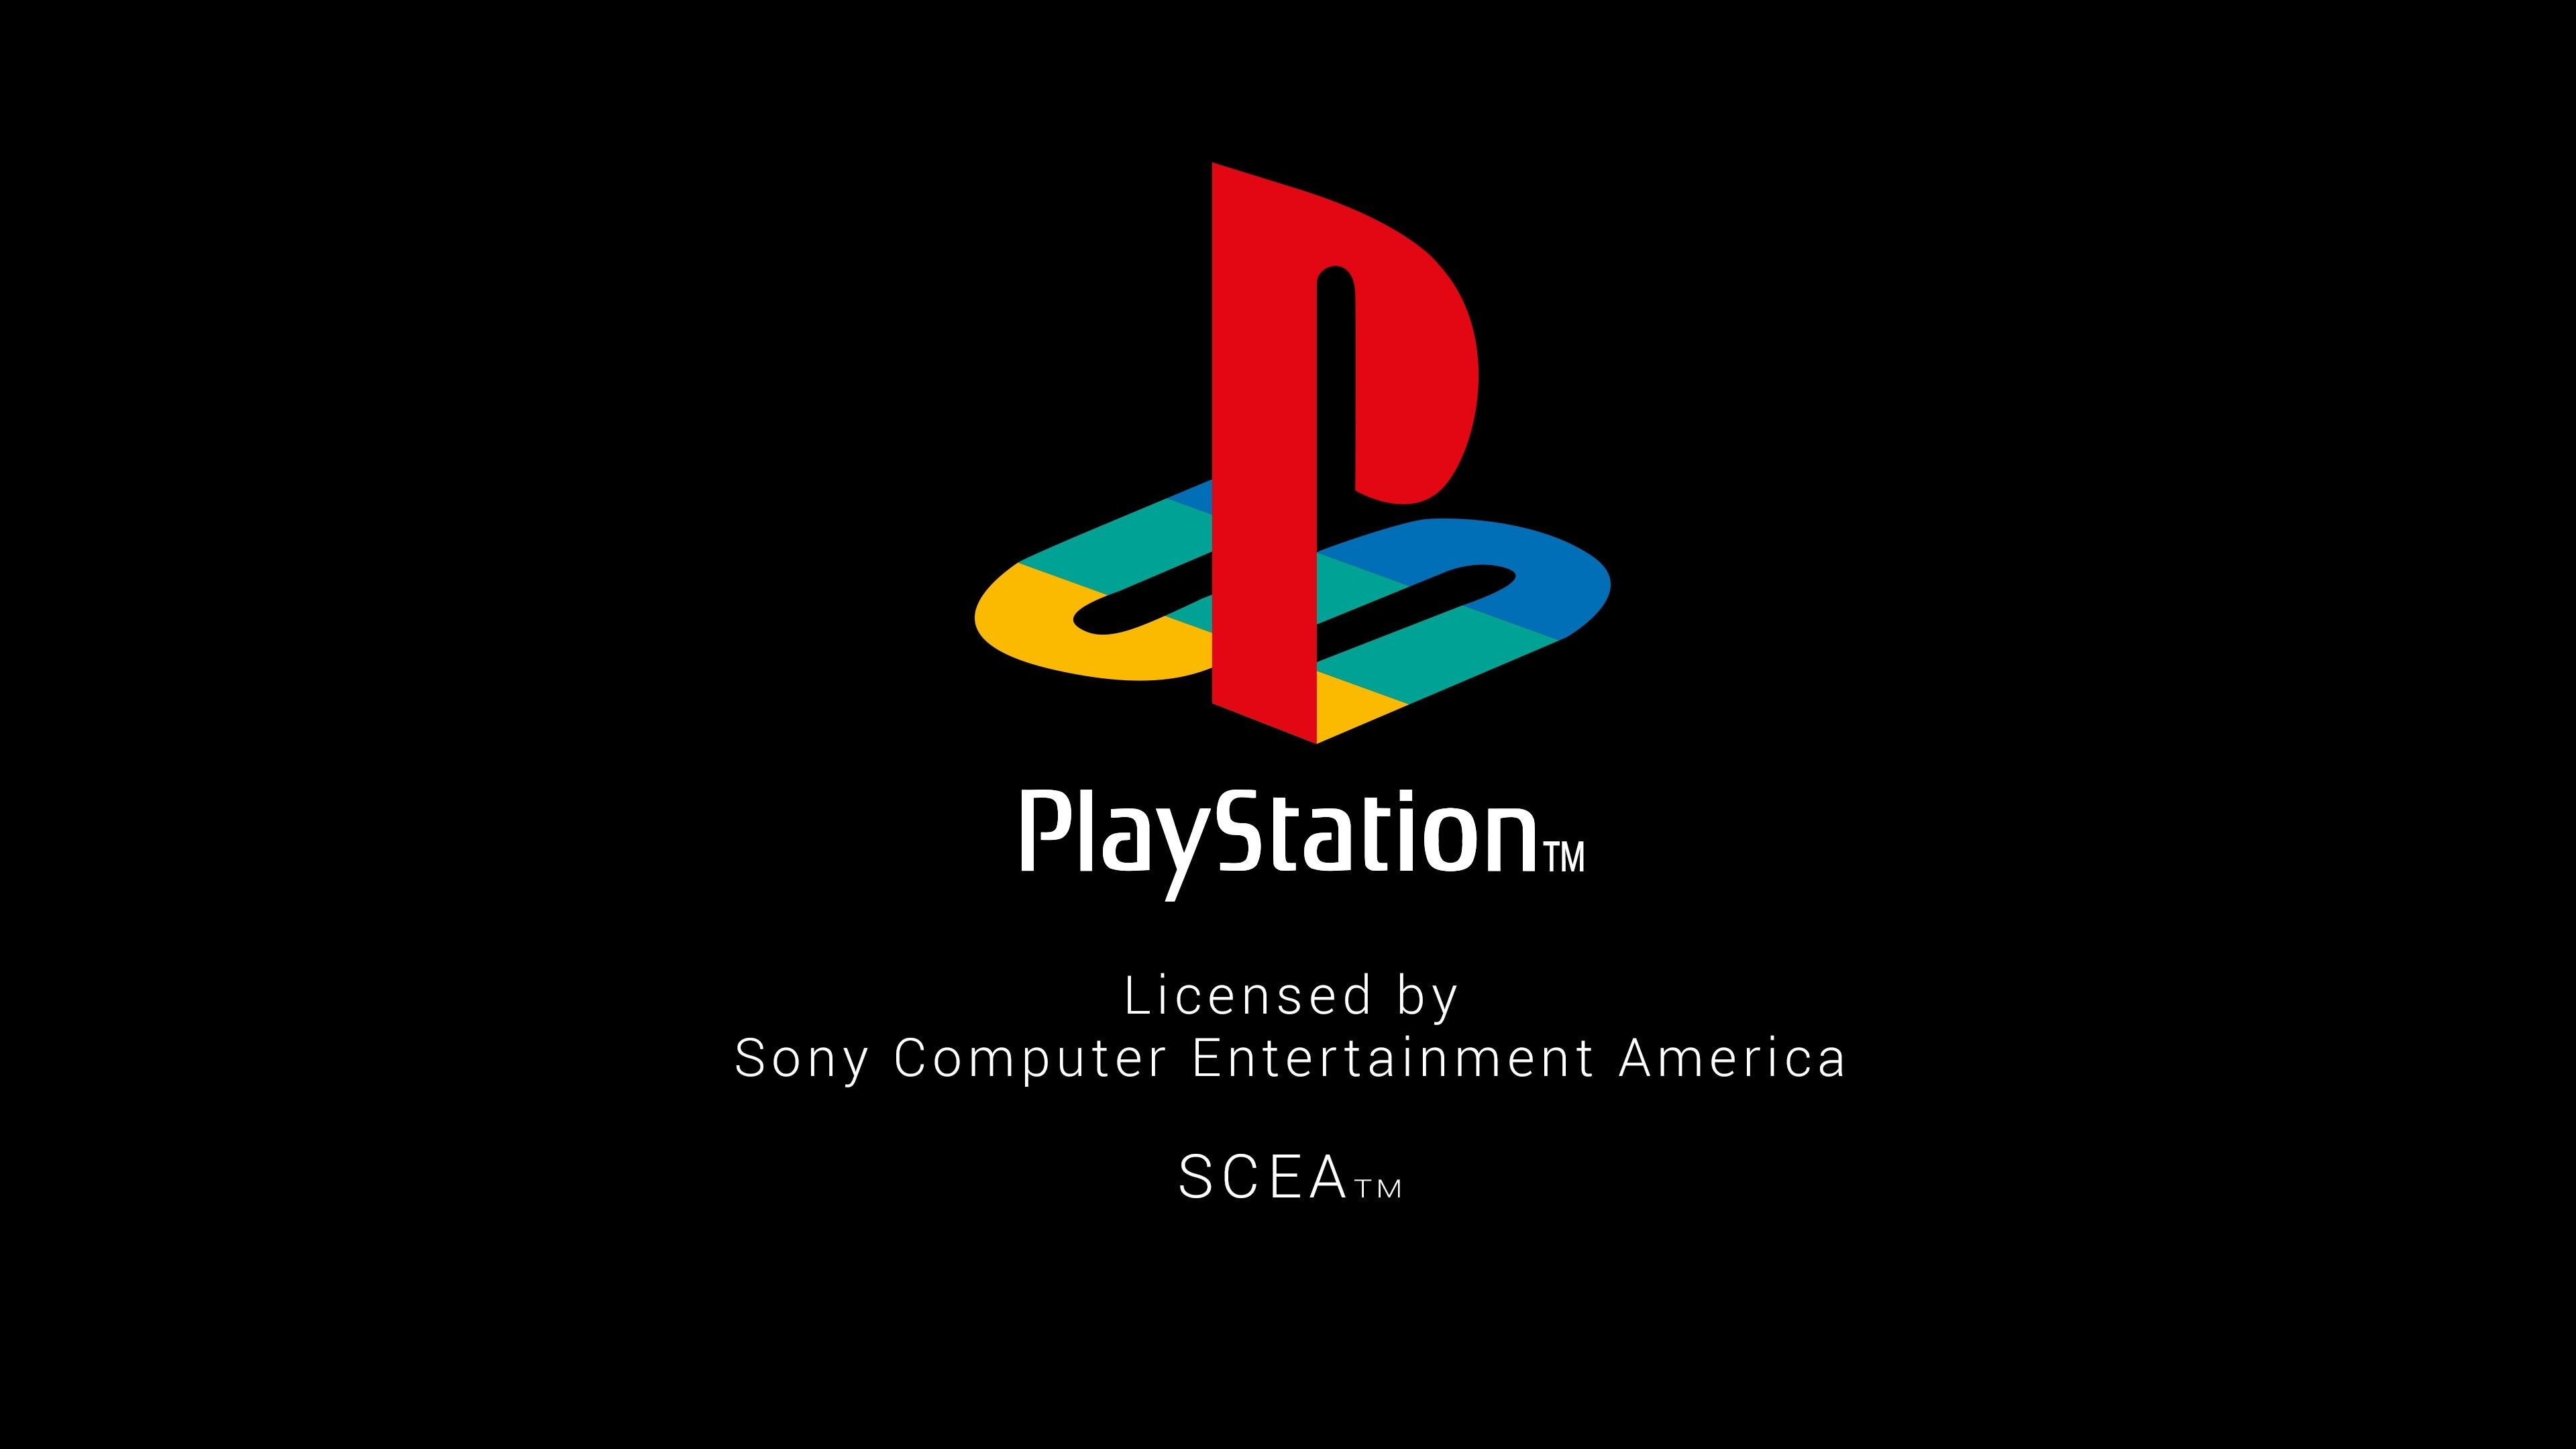 3840x2160 77+ Playstation Logo Wallpapers on WallpaperPlay